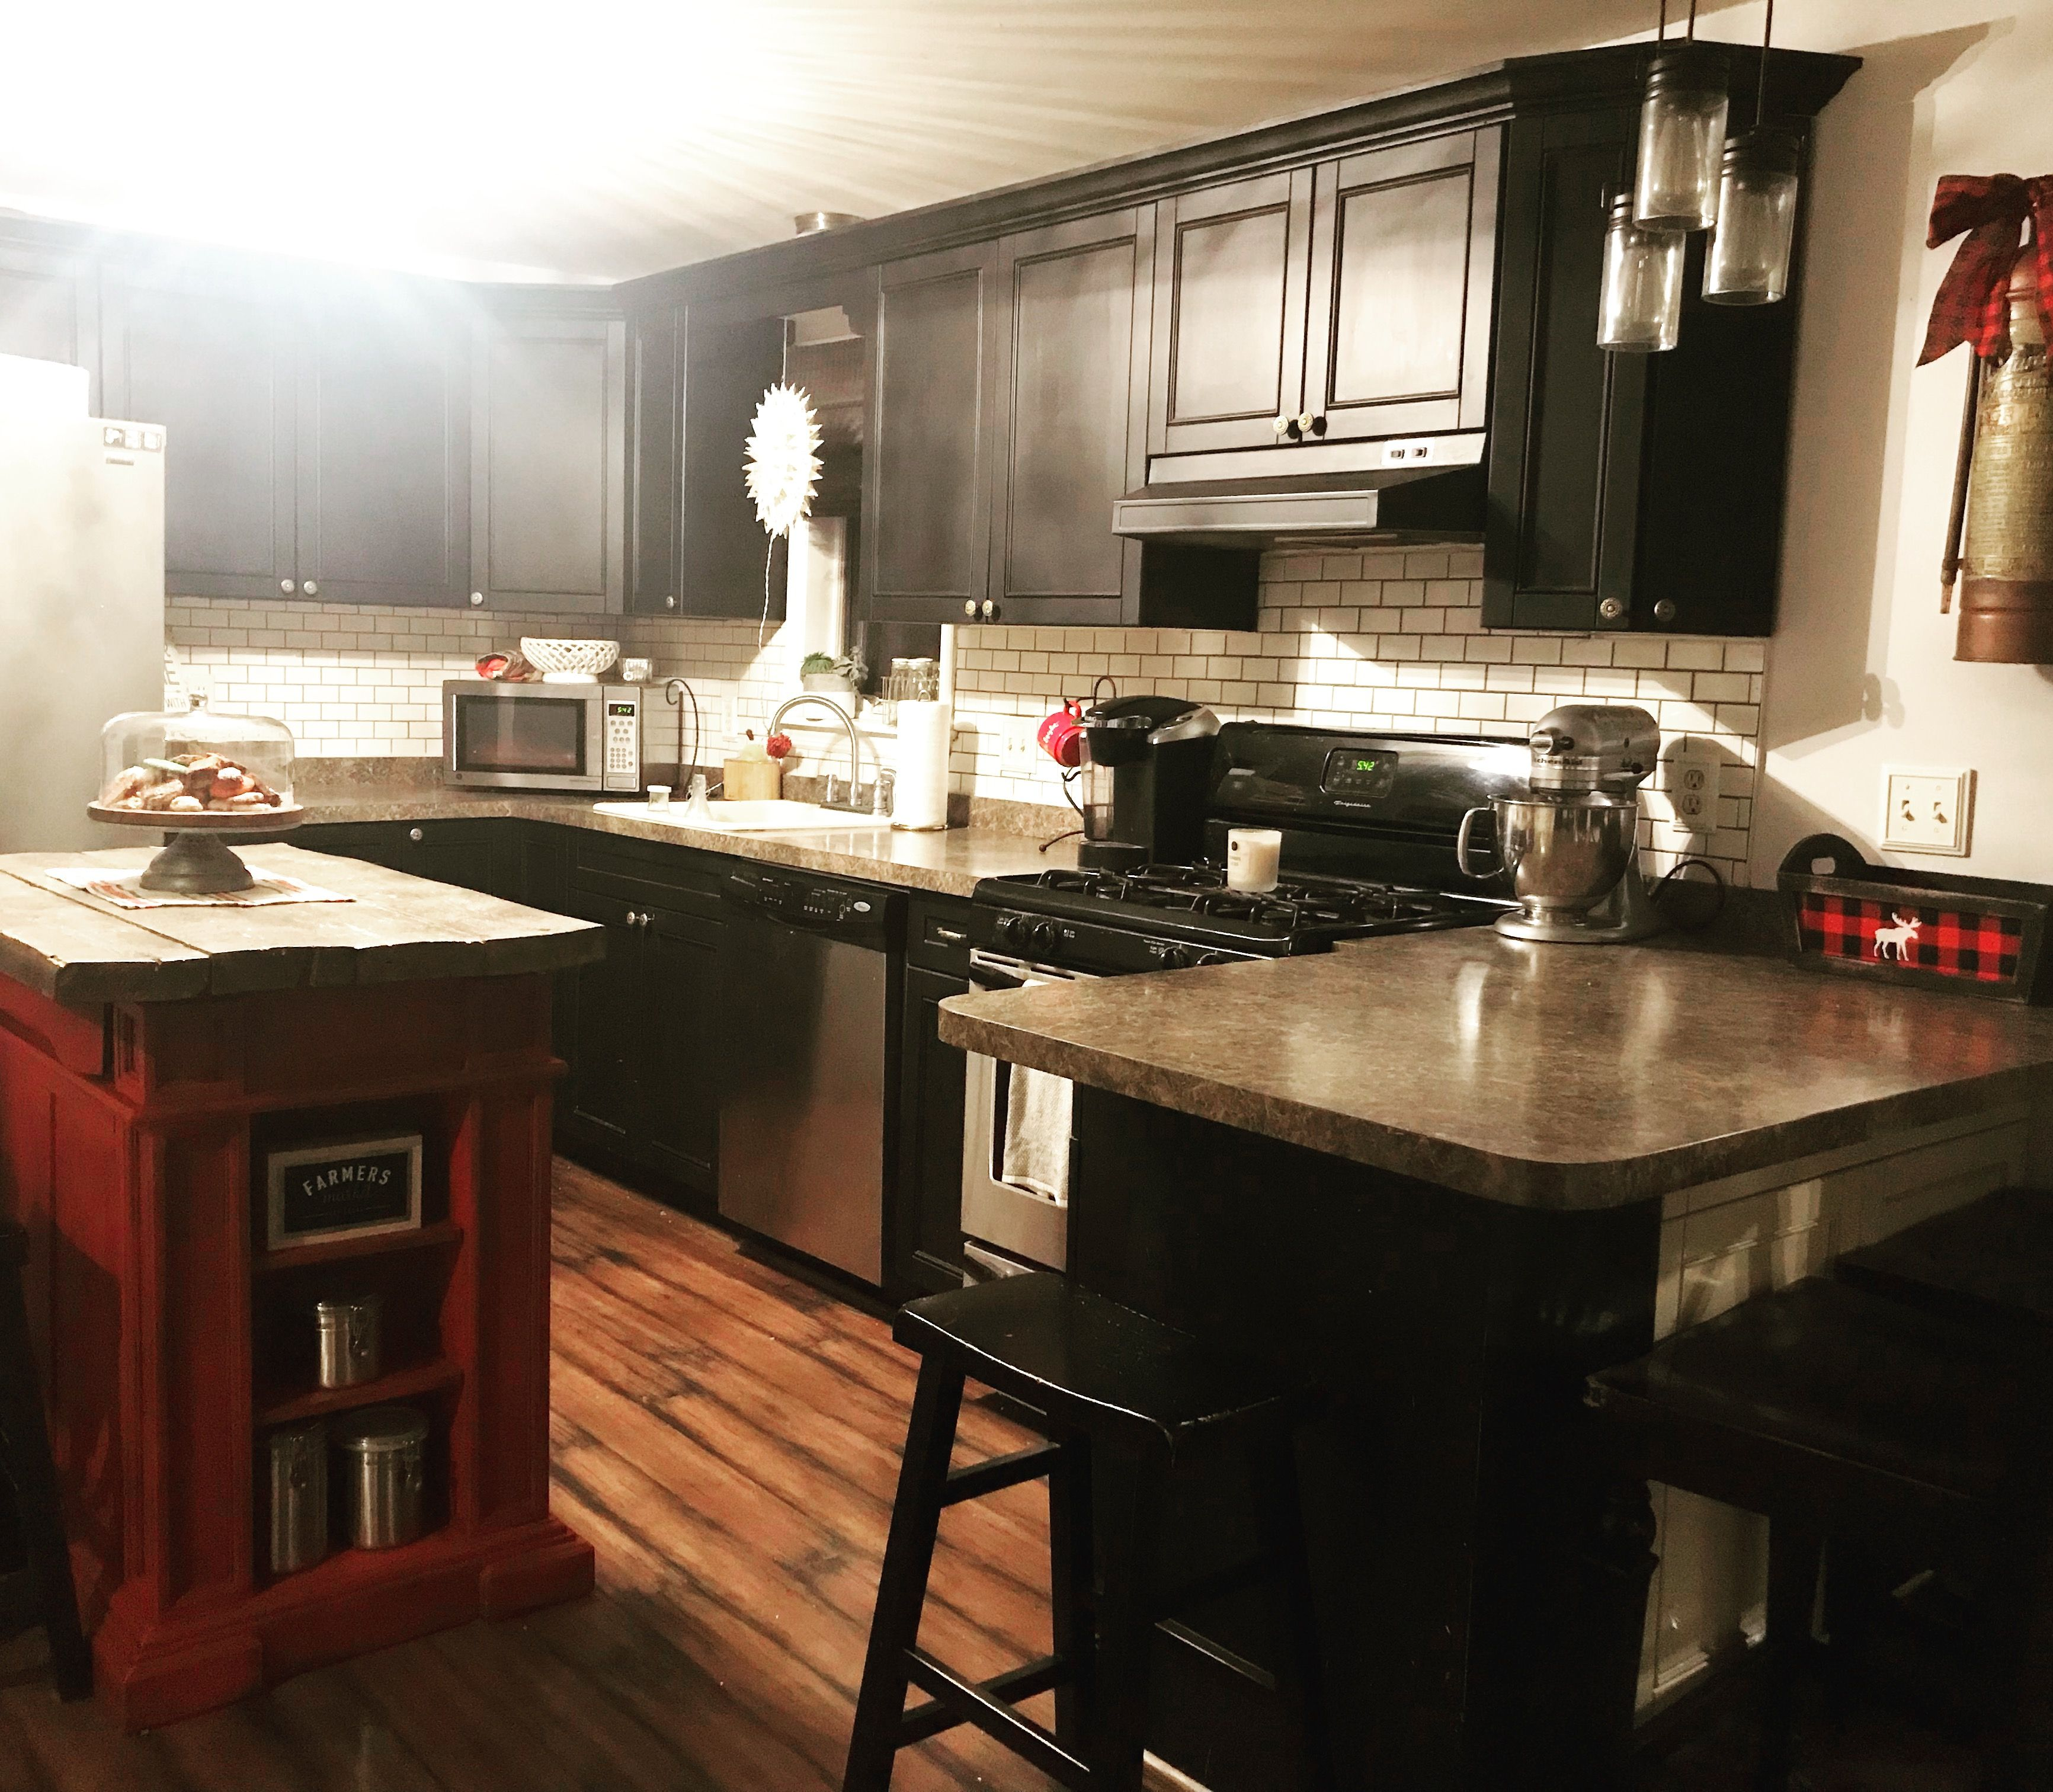 Modern Farmhouse Kitchen Black Cabinets Subway Tile And Red